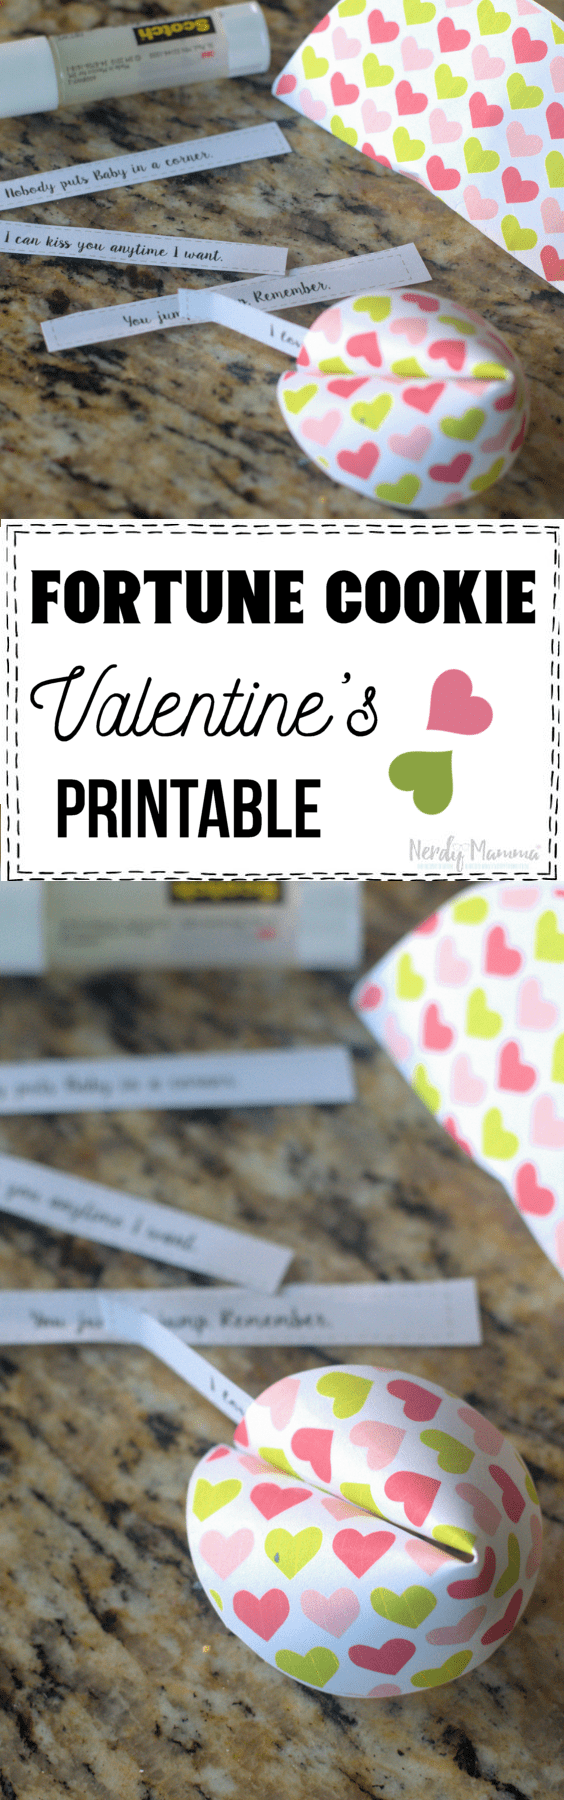 Fortune Cookie Valentine's Printable